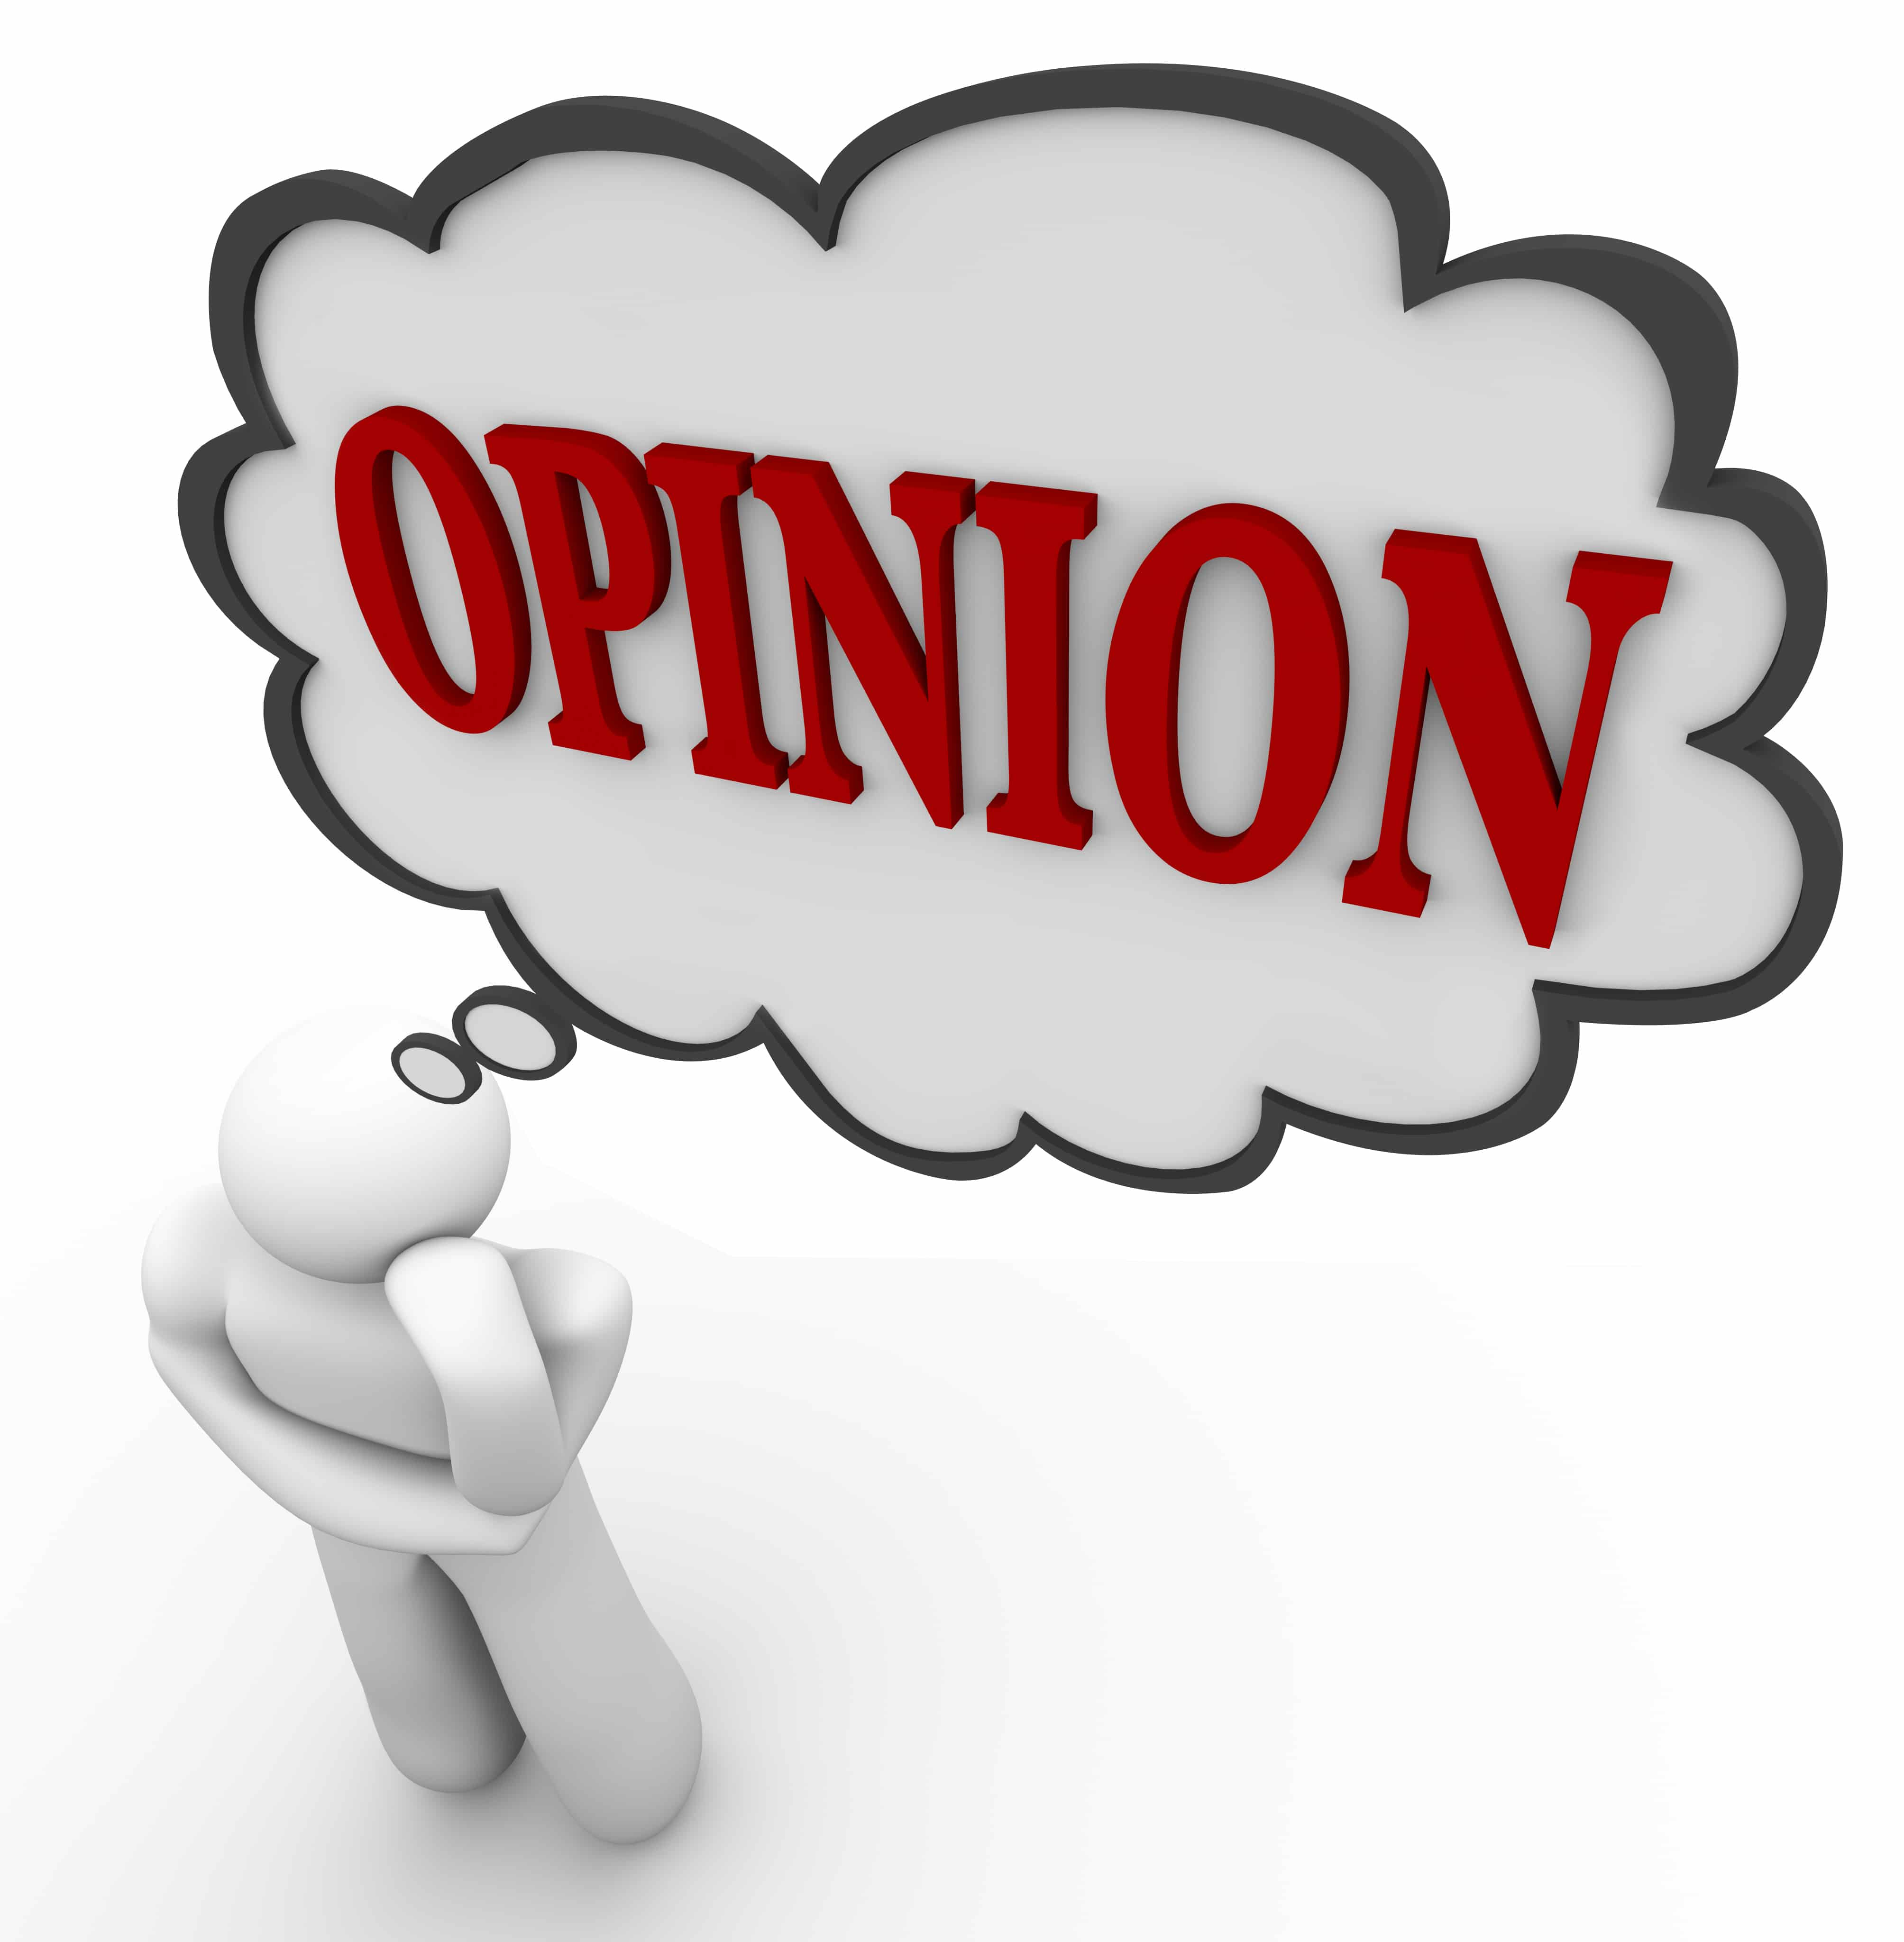 Teaching Fact Vs Opinion For Reading Comprehension